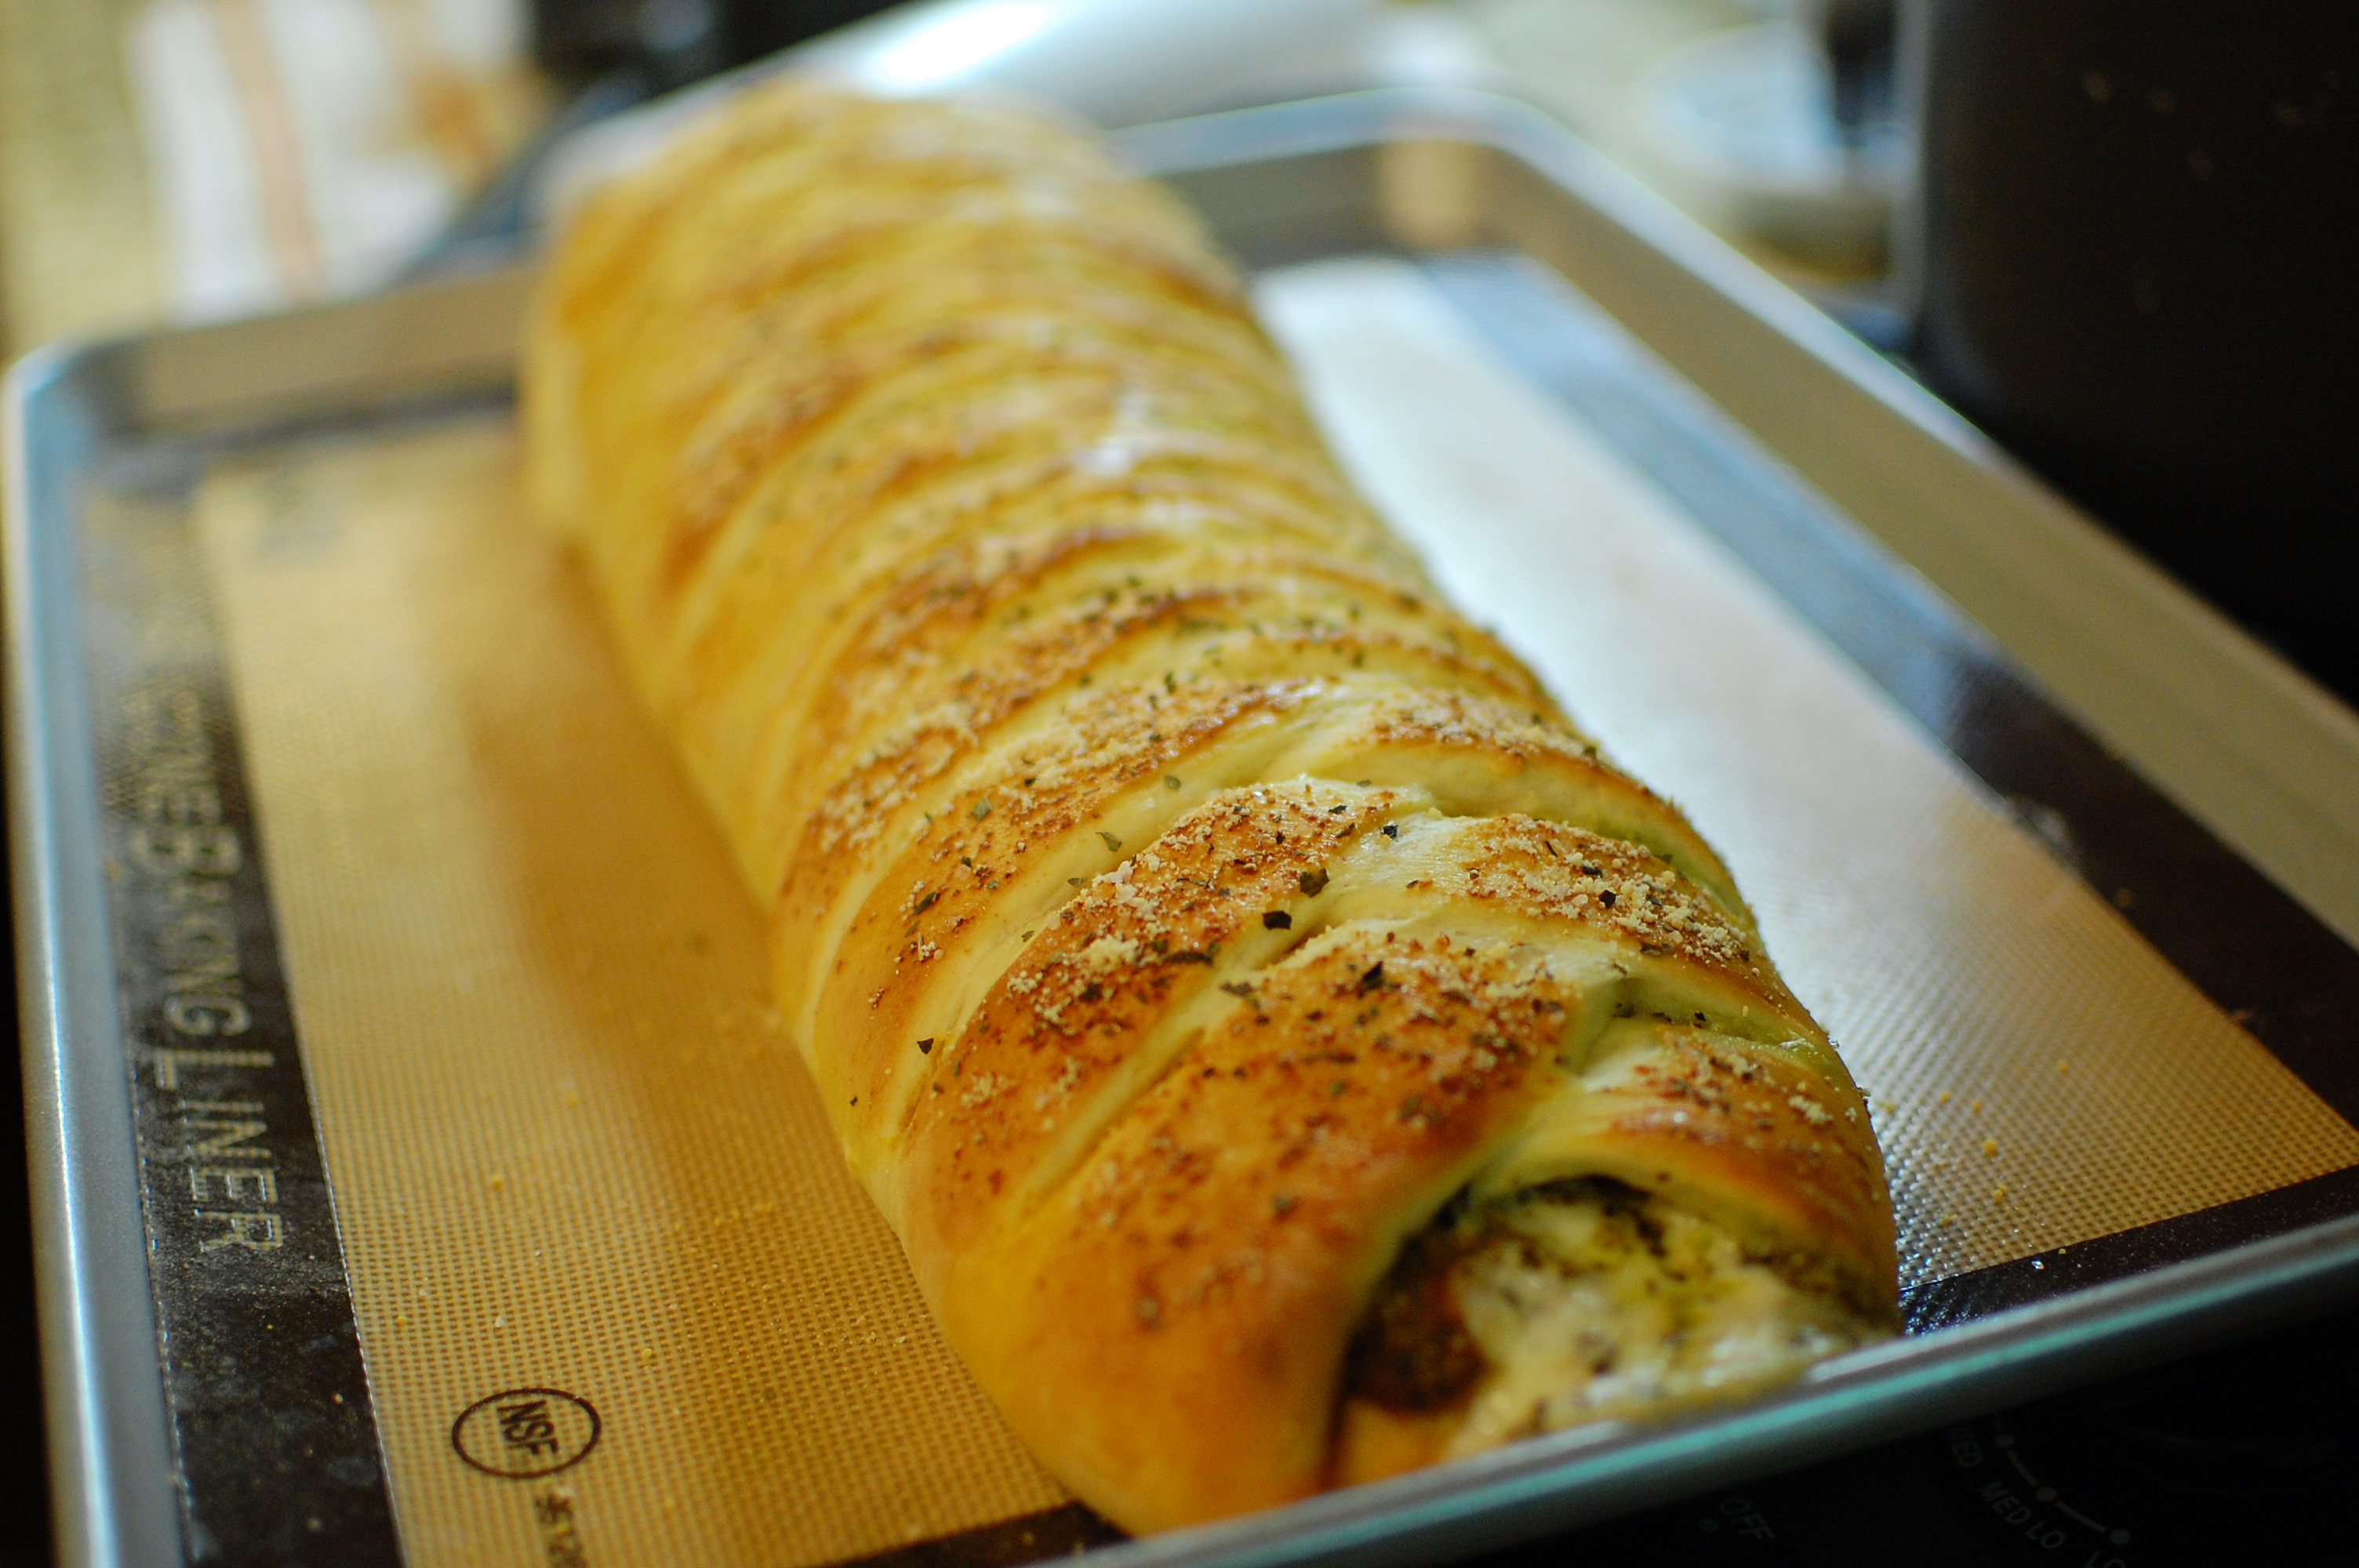 Pesto & Cheese Stuffed Braided Bread — The 350 Degree Oven